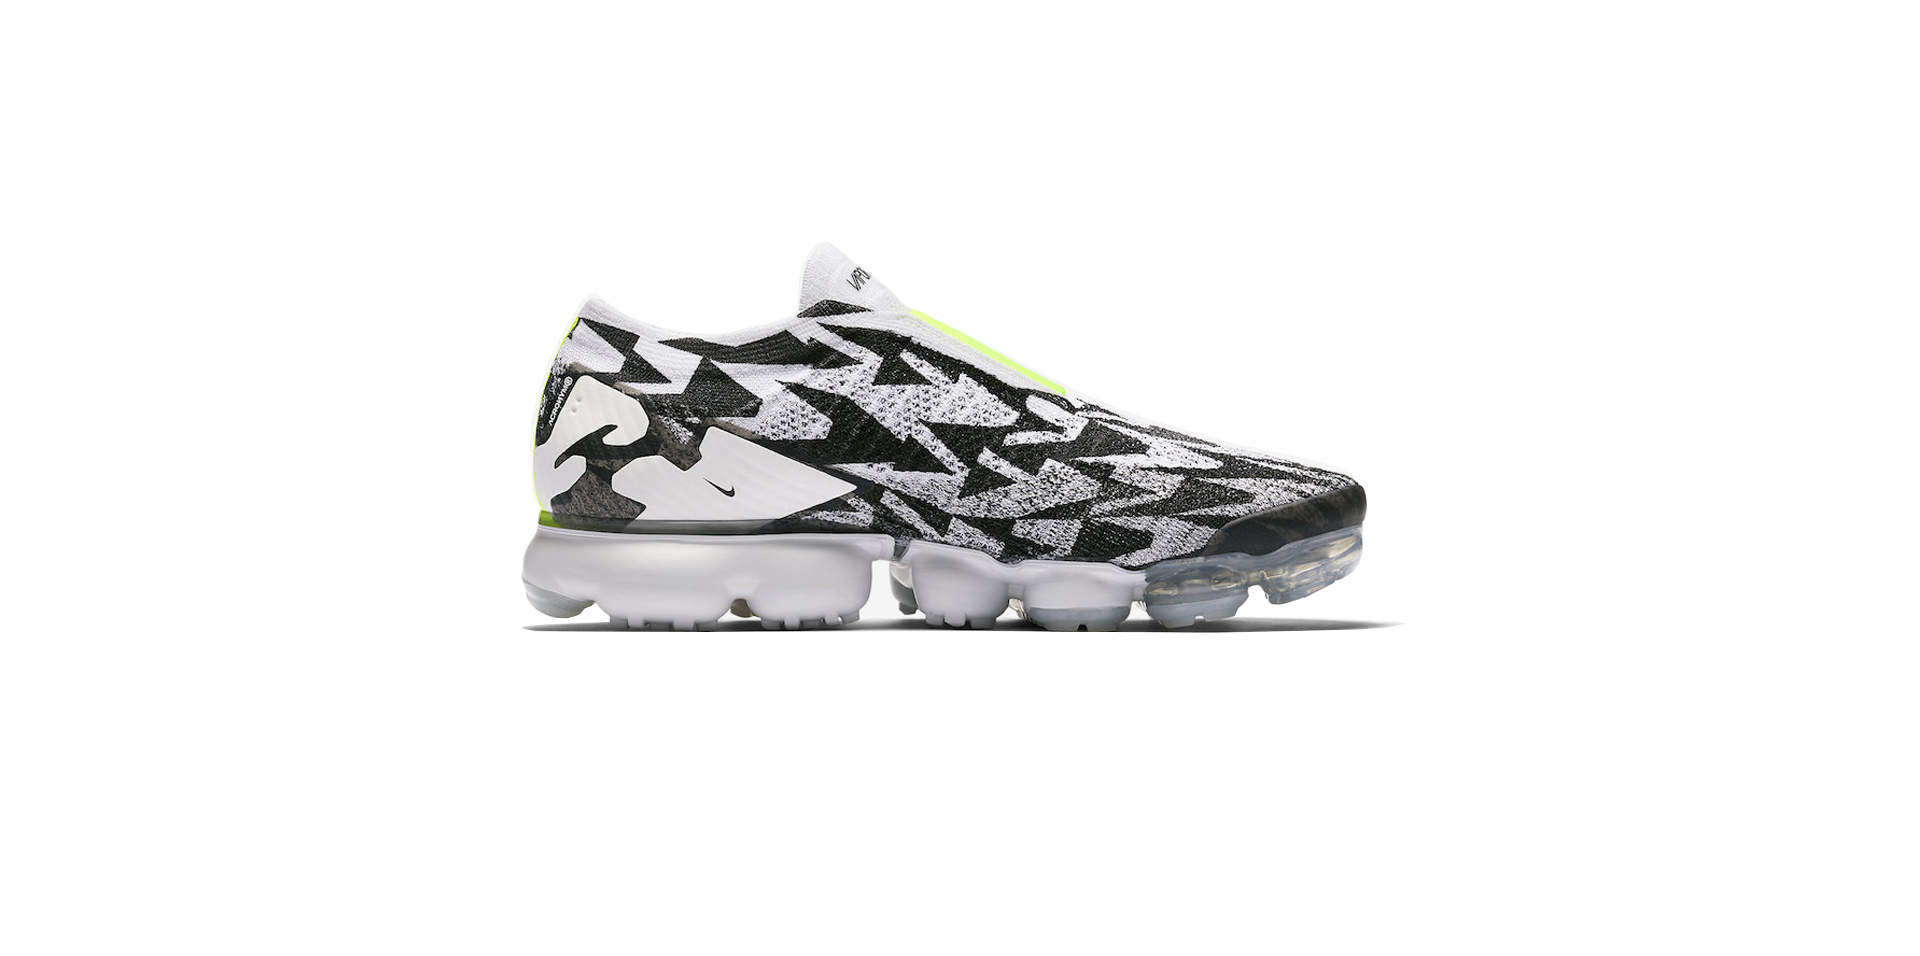 NIKE AIR VAPORMAX FK MOC 2 / ACRONYM - LIGHT BONE / VOLT-LIGHT BONE